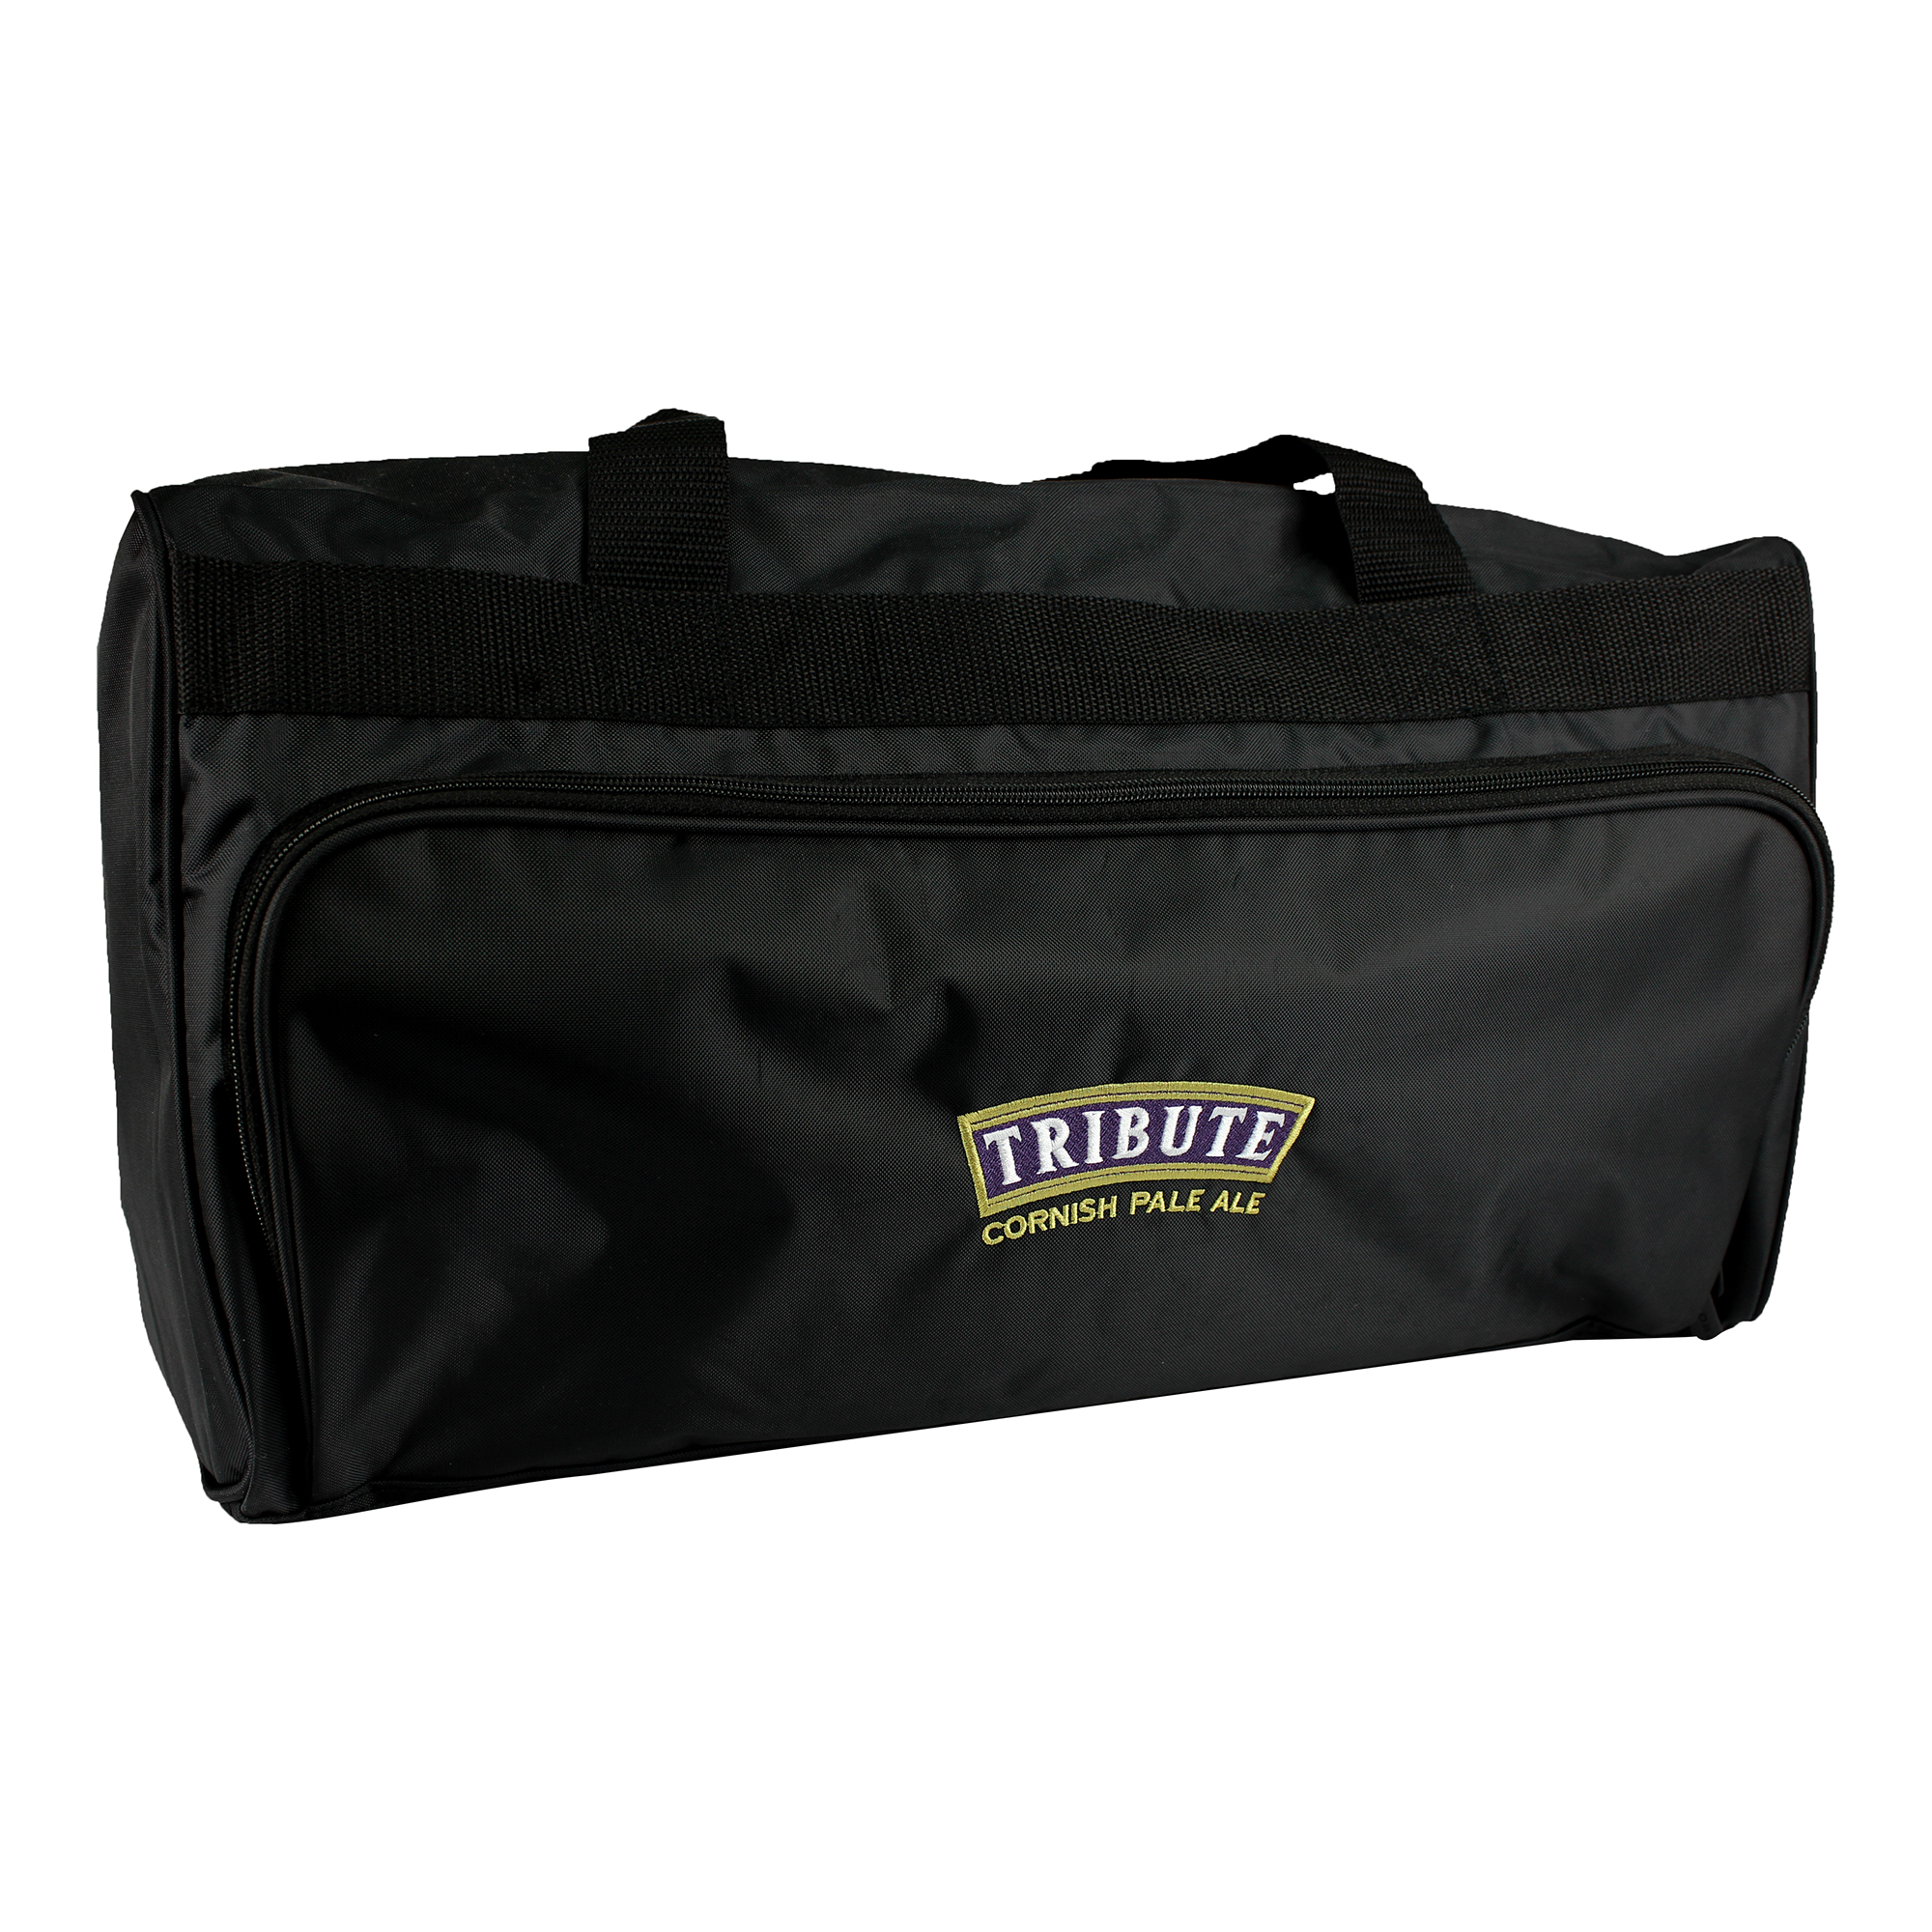 Tribute Sports Bag